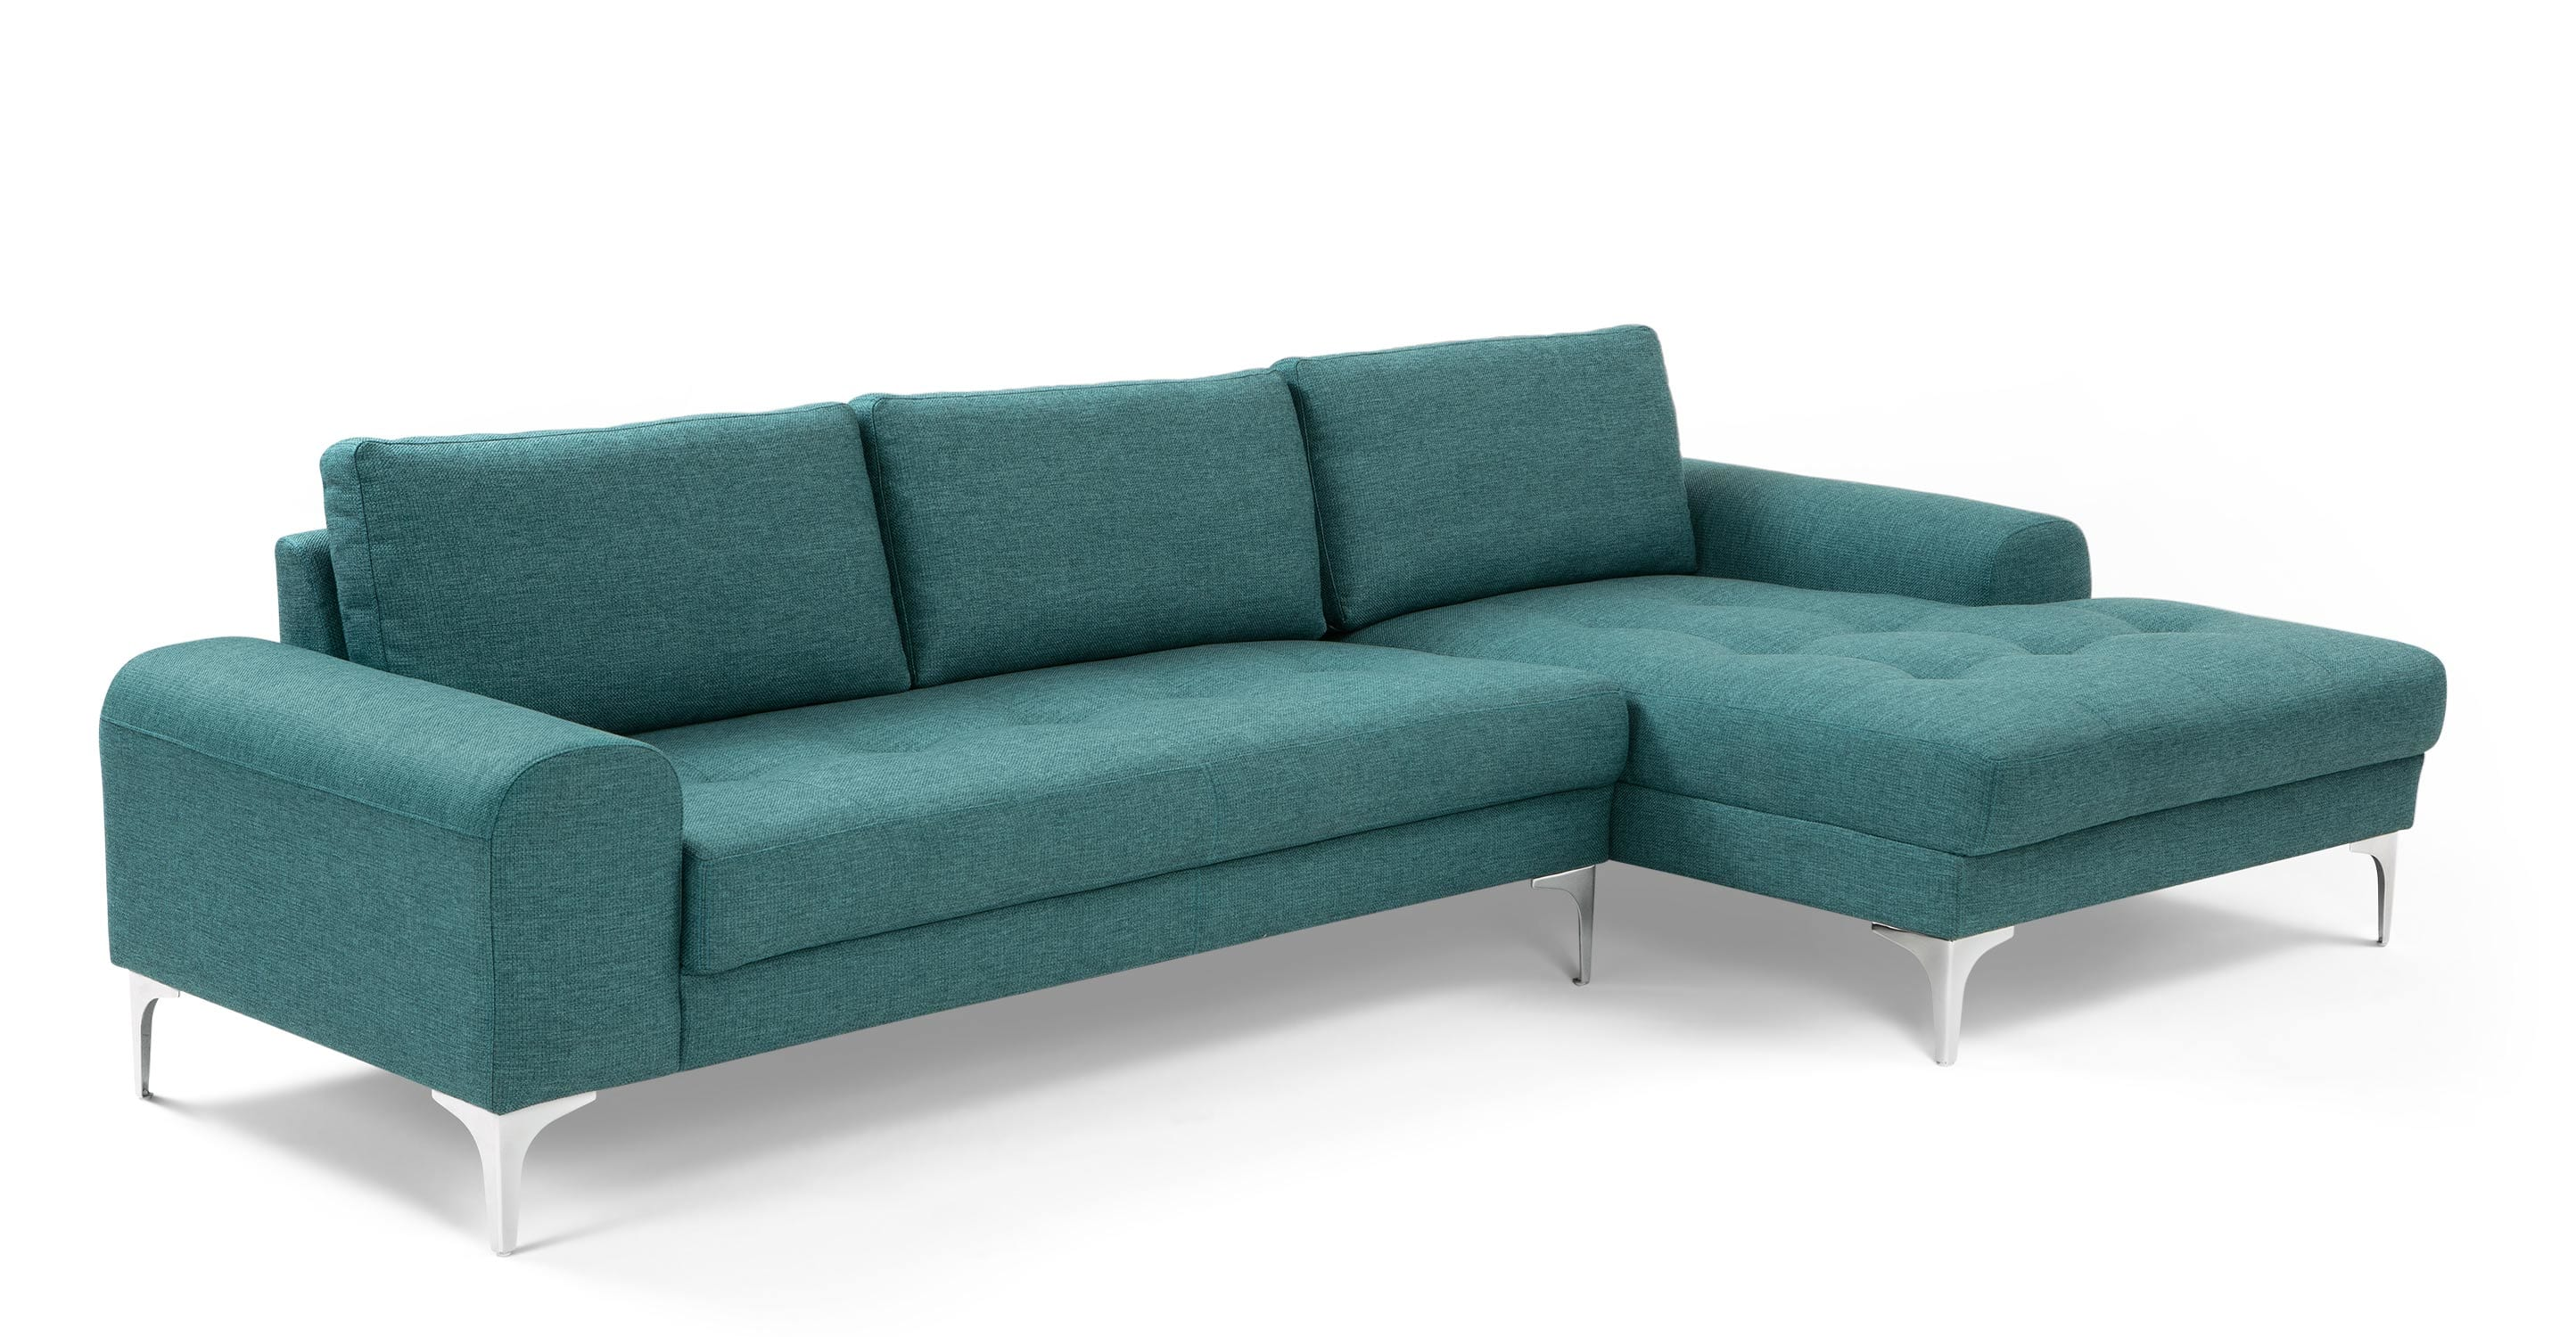 Rh Cloud Sofa Vittorio Right Hand Facing Corner Sofa Group Teal Made